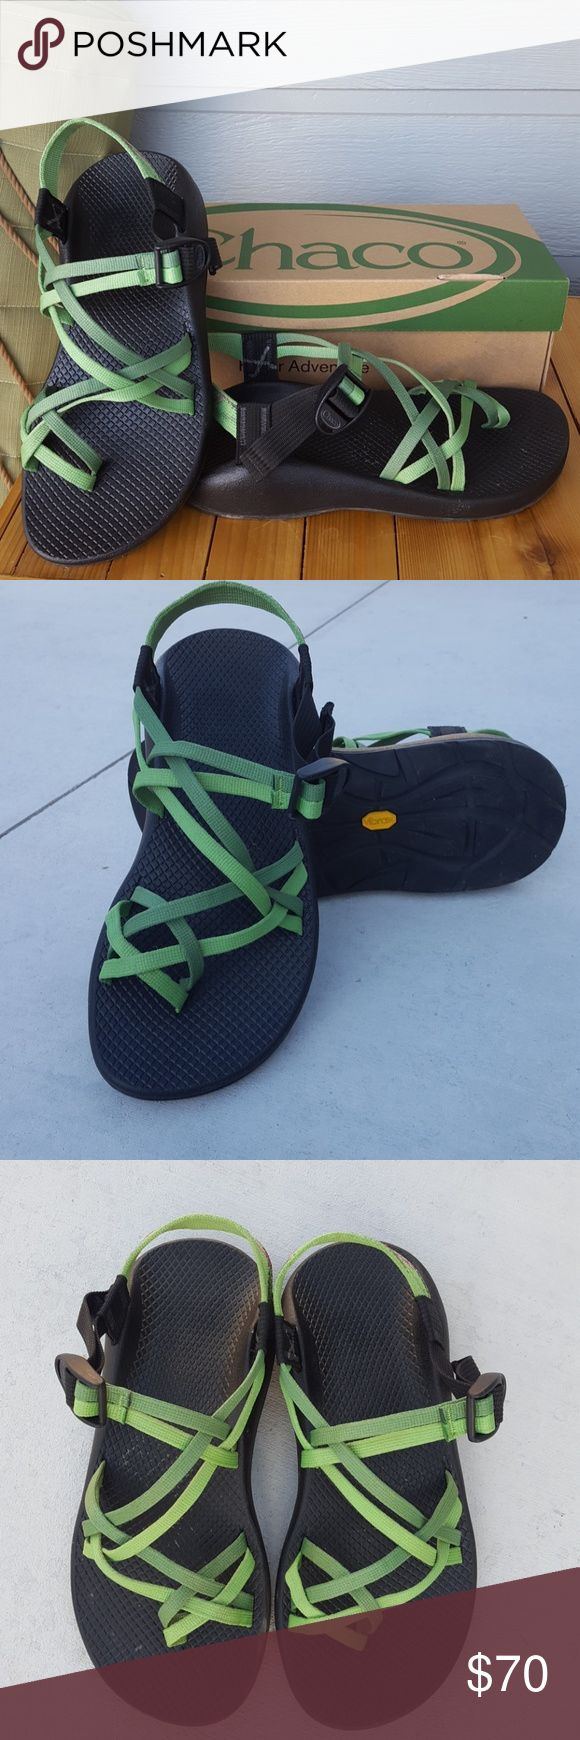 Women's Chaco Sandals Z2 Green two tone double strap women's Chaco Sandals Z2 Size 9 Box included Like new condition, only worn 3 times.  Super cute and comfortable!  Chacos last forever!  Retails for $110 Chaco Shoes Sandals